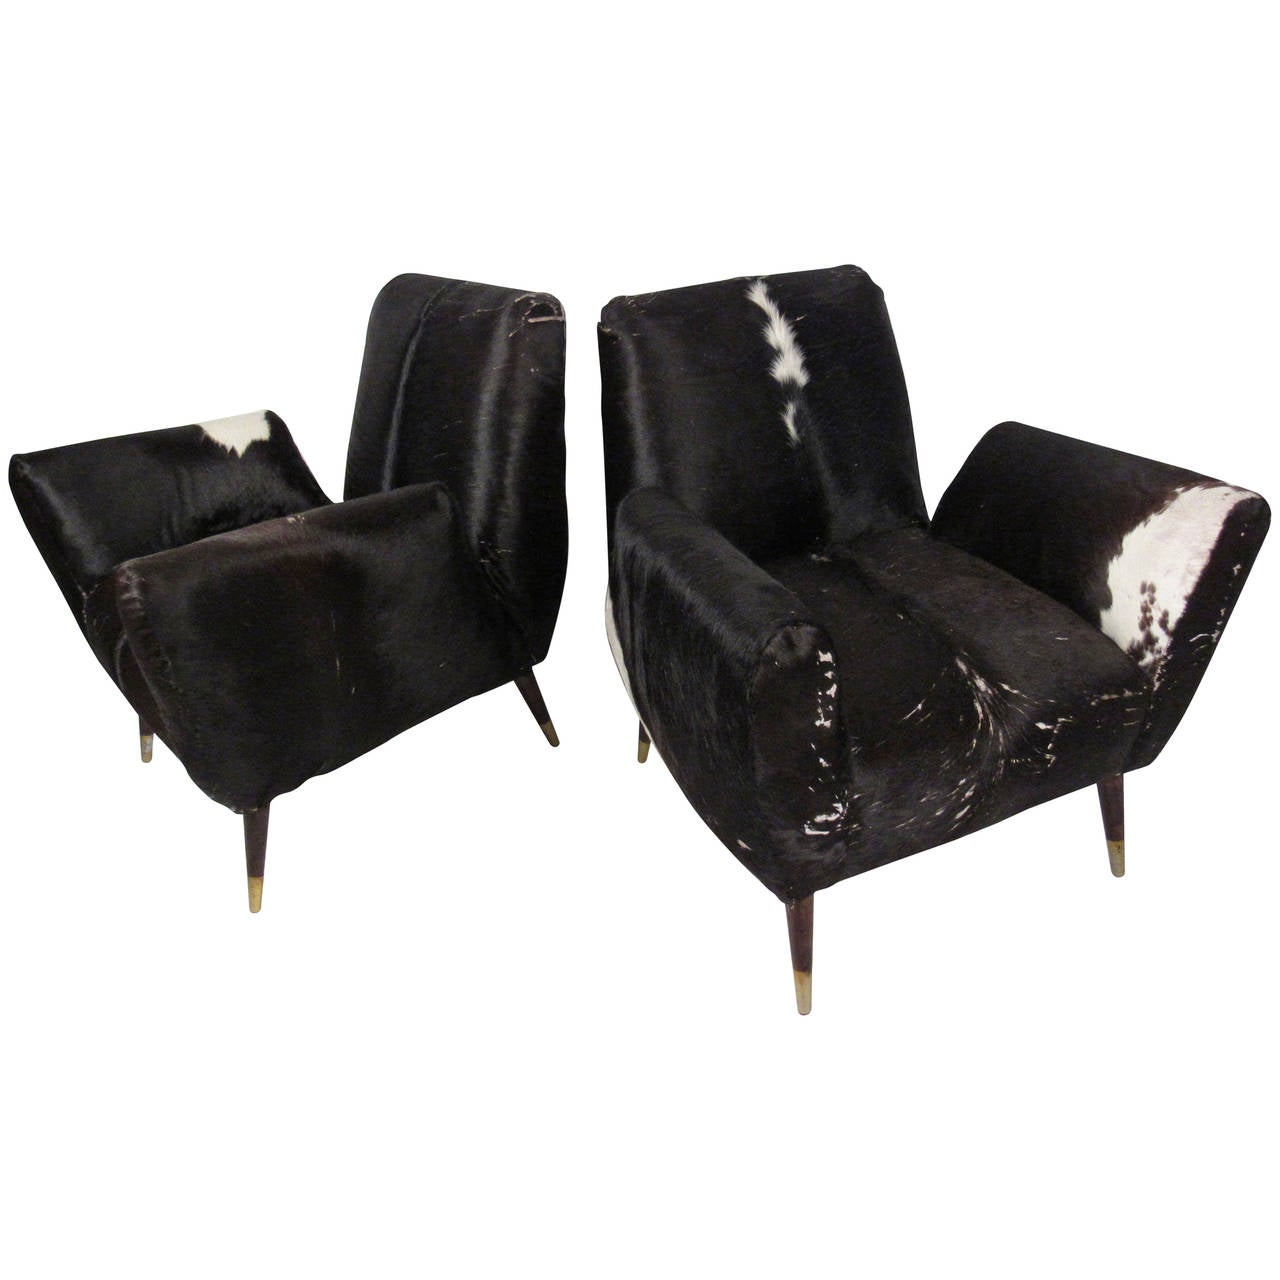 Pair of mid century modern cowhide lounge chairs at 1stdibs